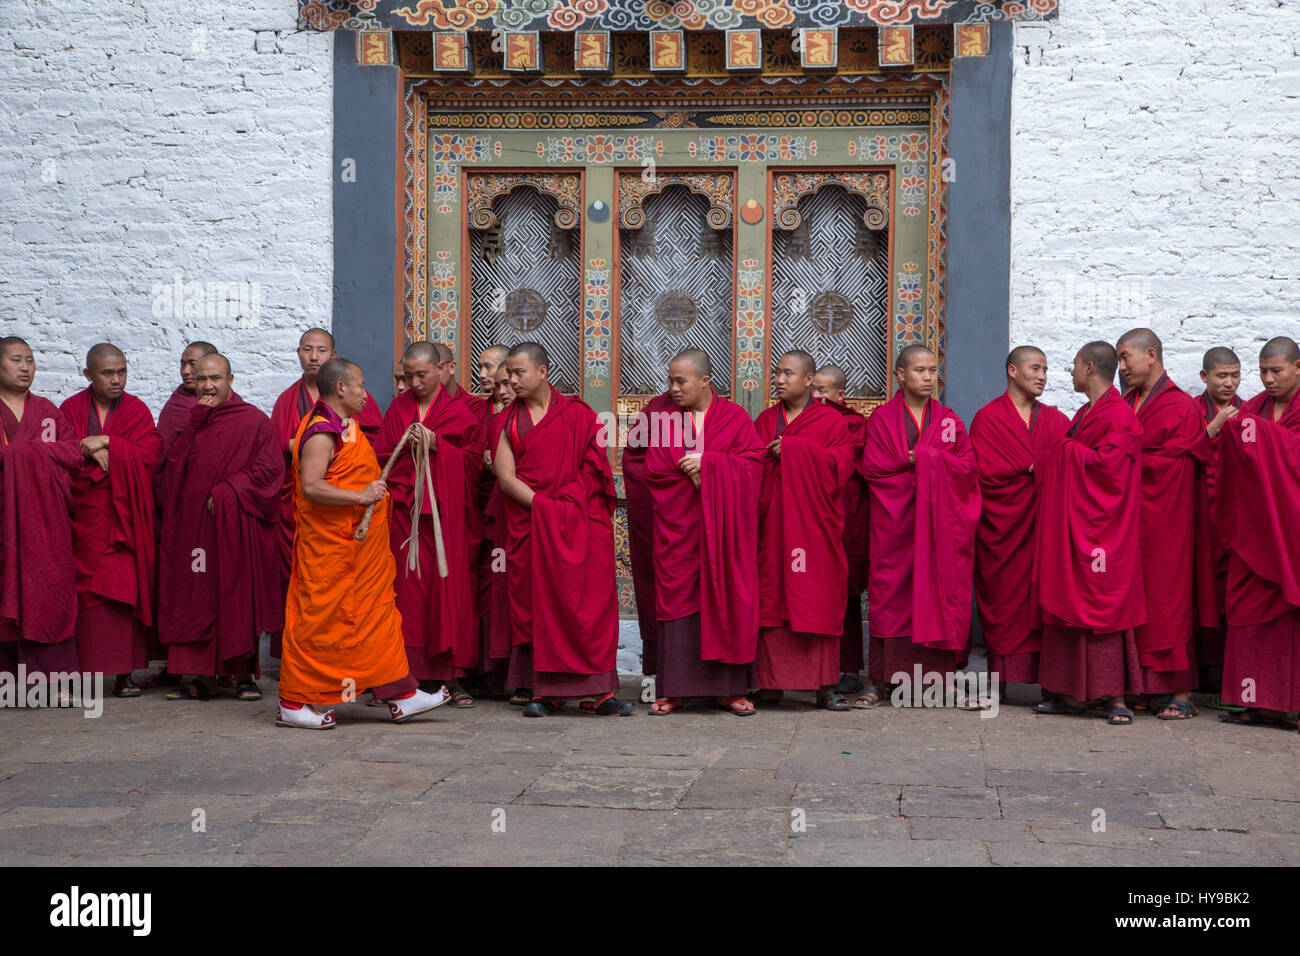 A line of Buddhist monks gather for a ceremony in the religious courtyard of the Punakha Dzong in Punakha, Bhutan. - Stock Image